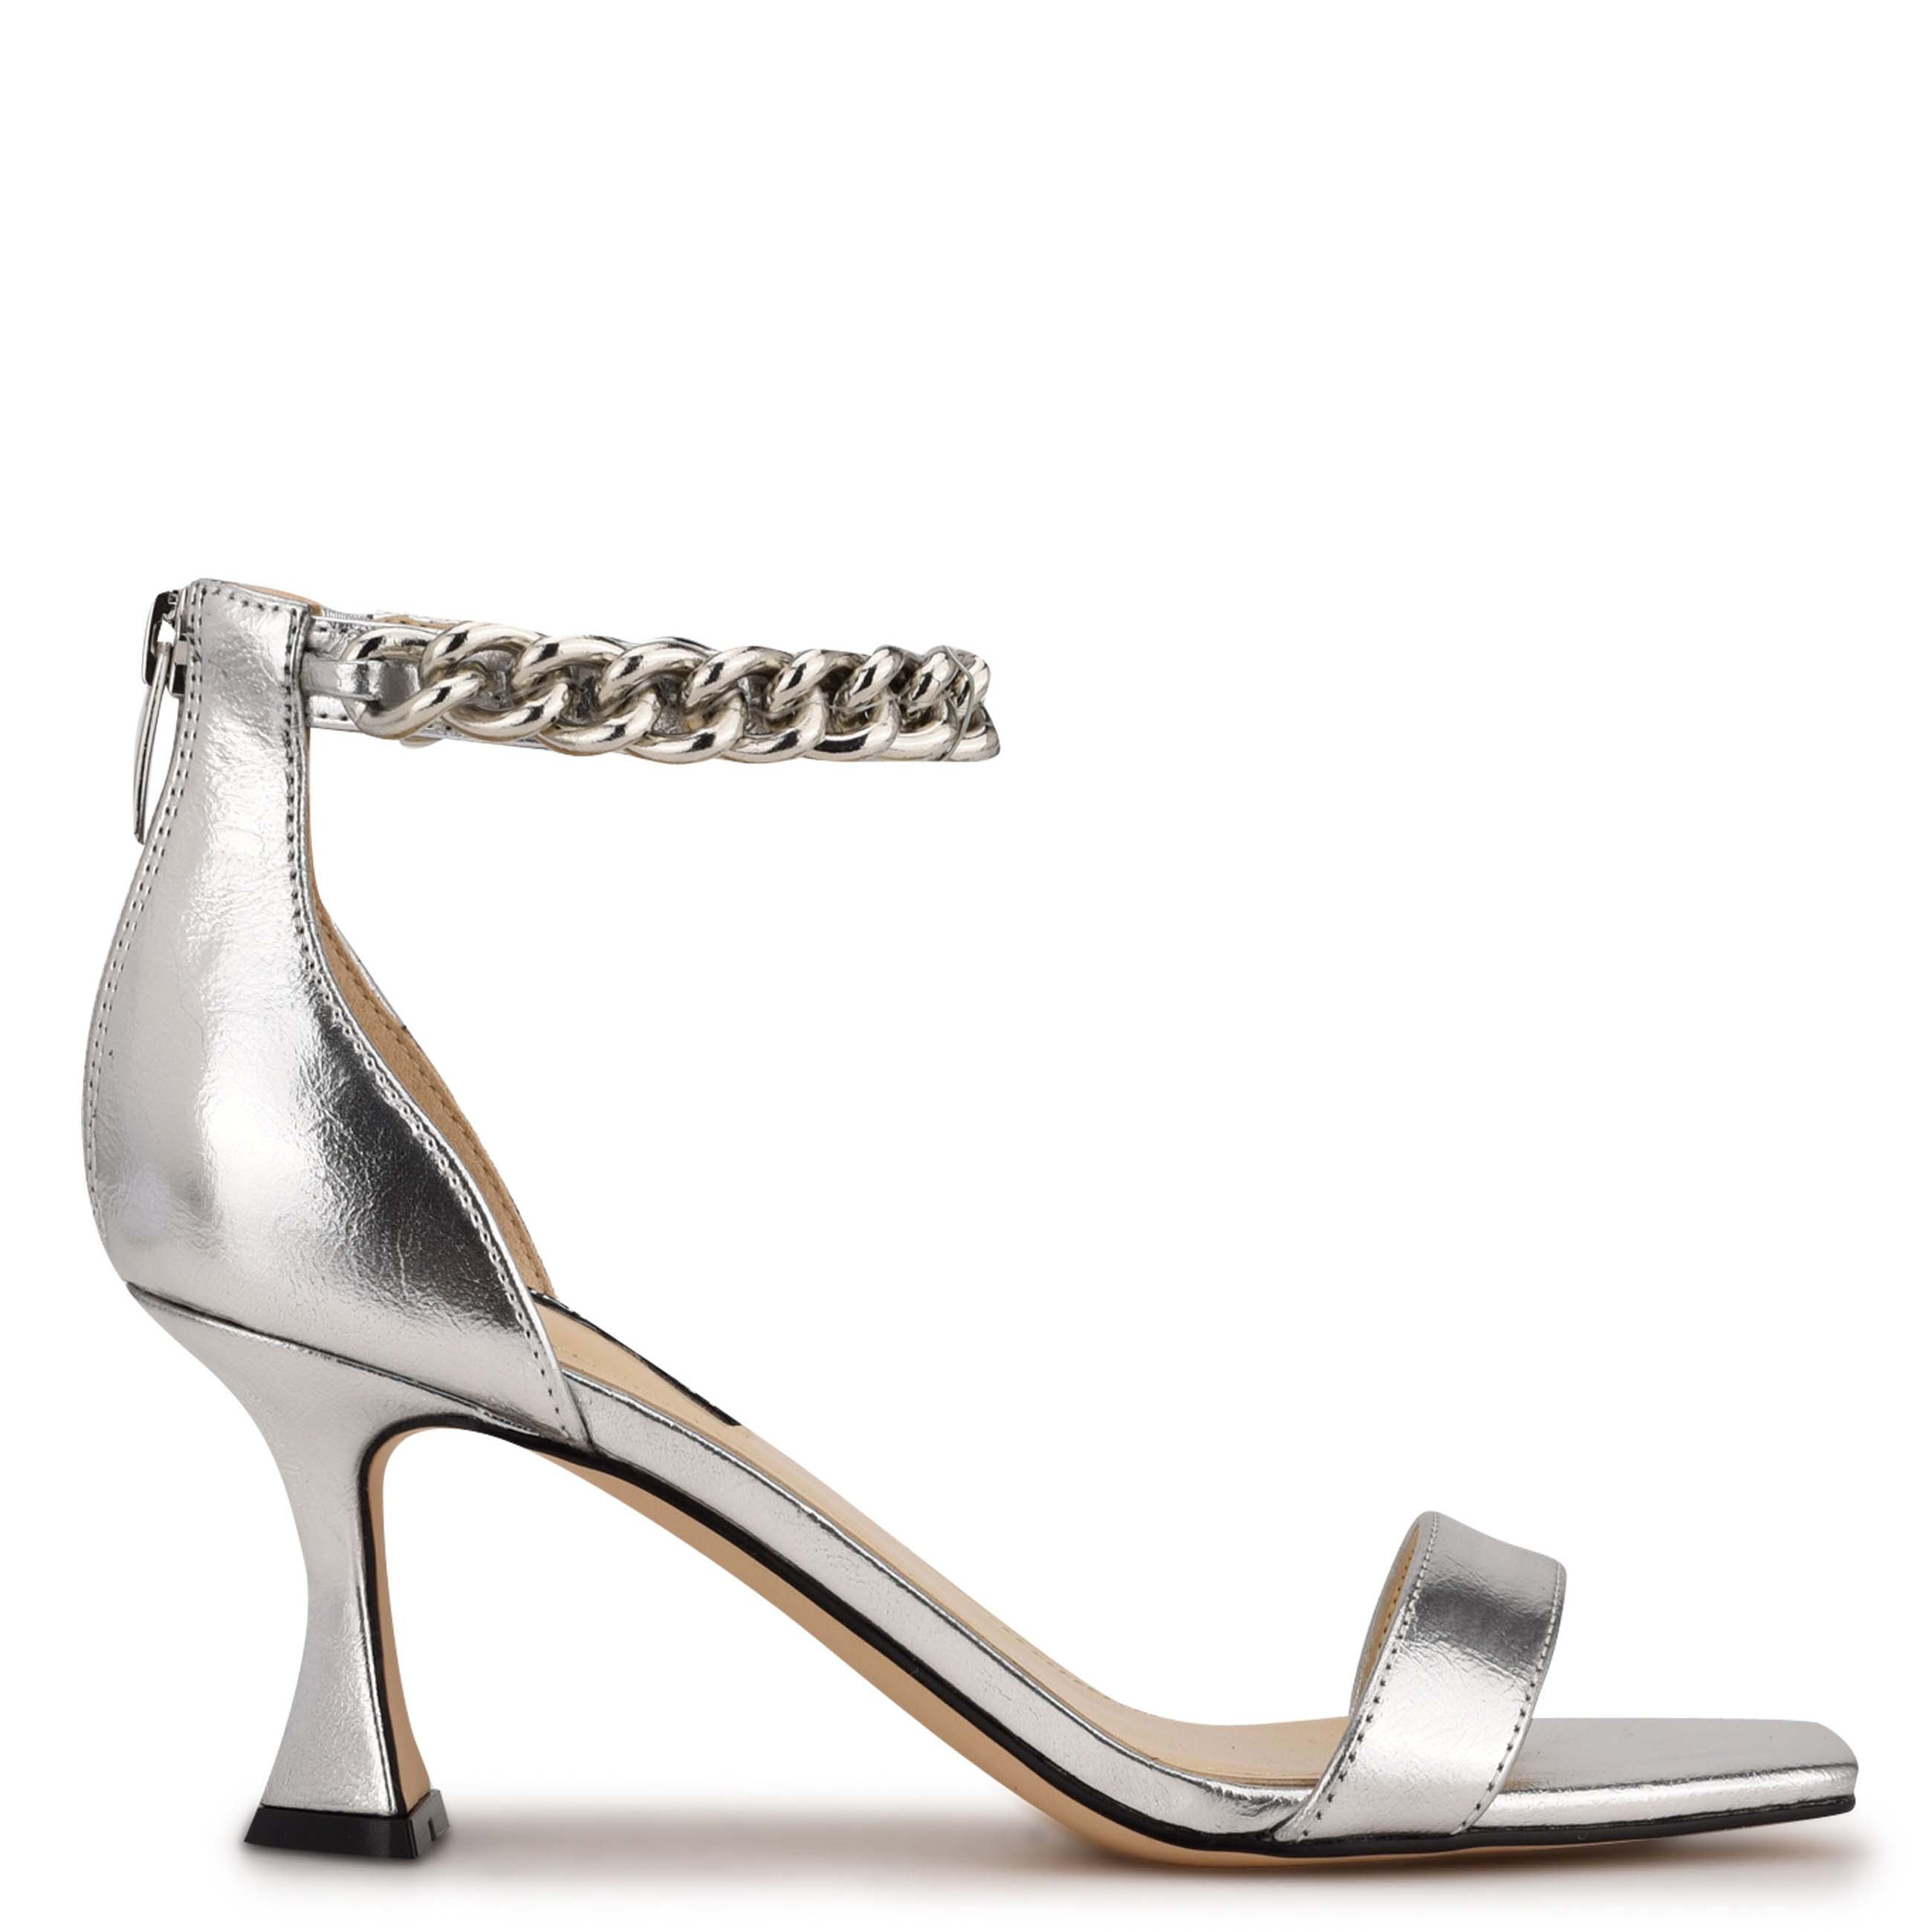 NINEWEST Palace Ankle Strap Heel Sandals